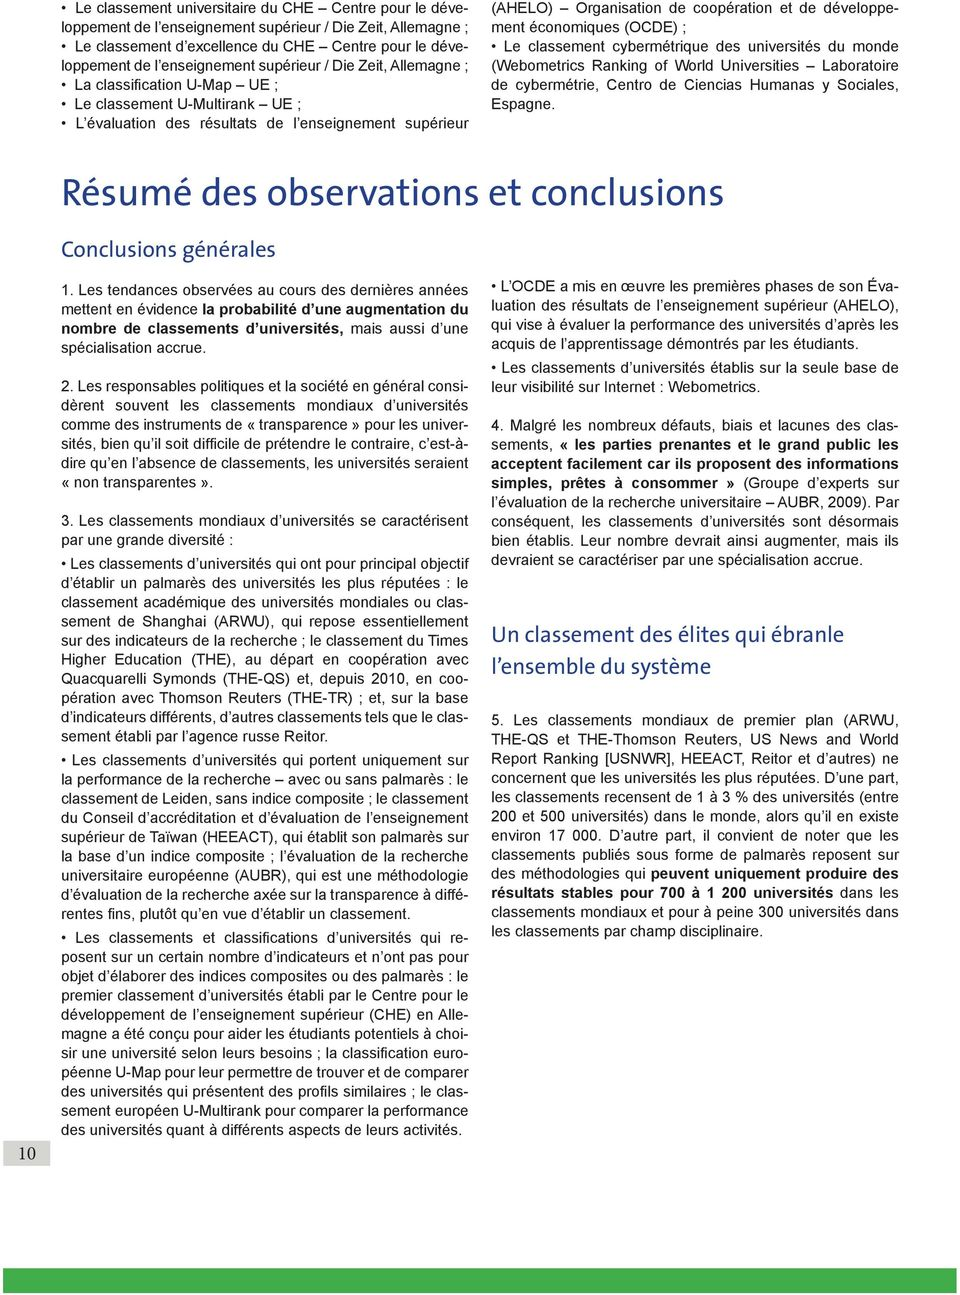 développement économiques (OCDE) ; Le classement cybermétrique des universités du monde (Webometrics Ranking of World Universities Laboratoire de cybermétrie, Centro de Ciencias Humanas y Sociales,